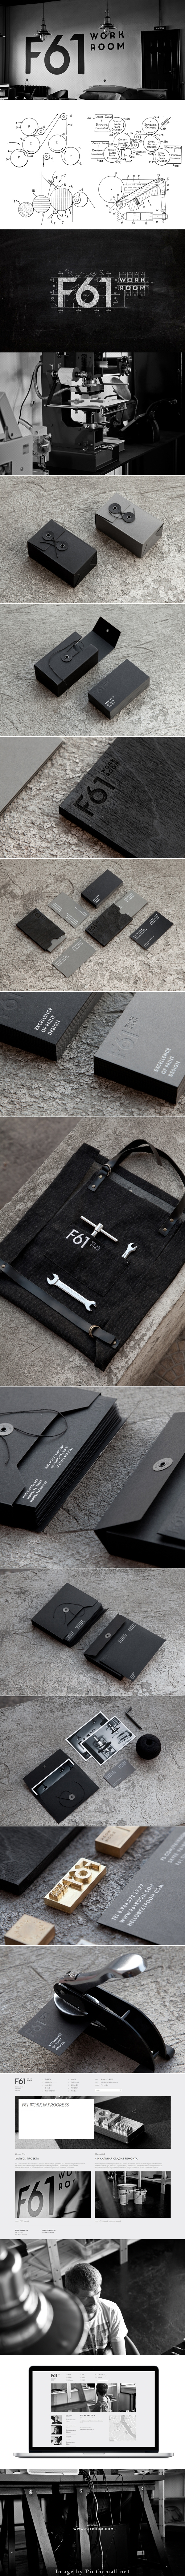 F61 Brand Identity By Pavel Emelyanov  F61 Work Room. F61 is the print studio in St. Petersburg.